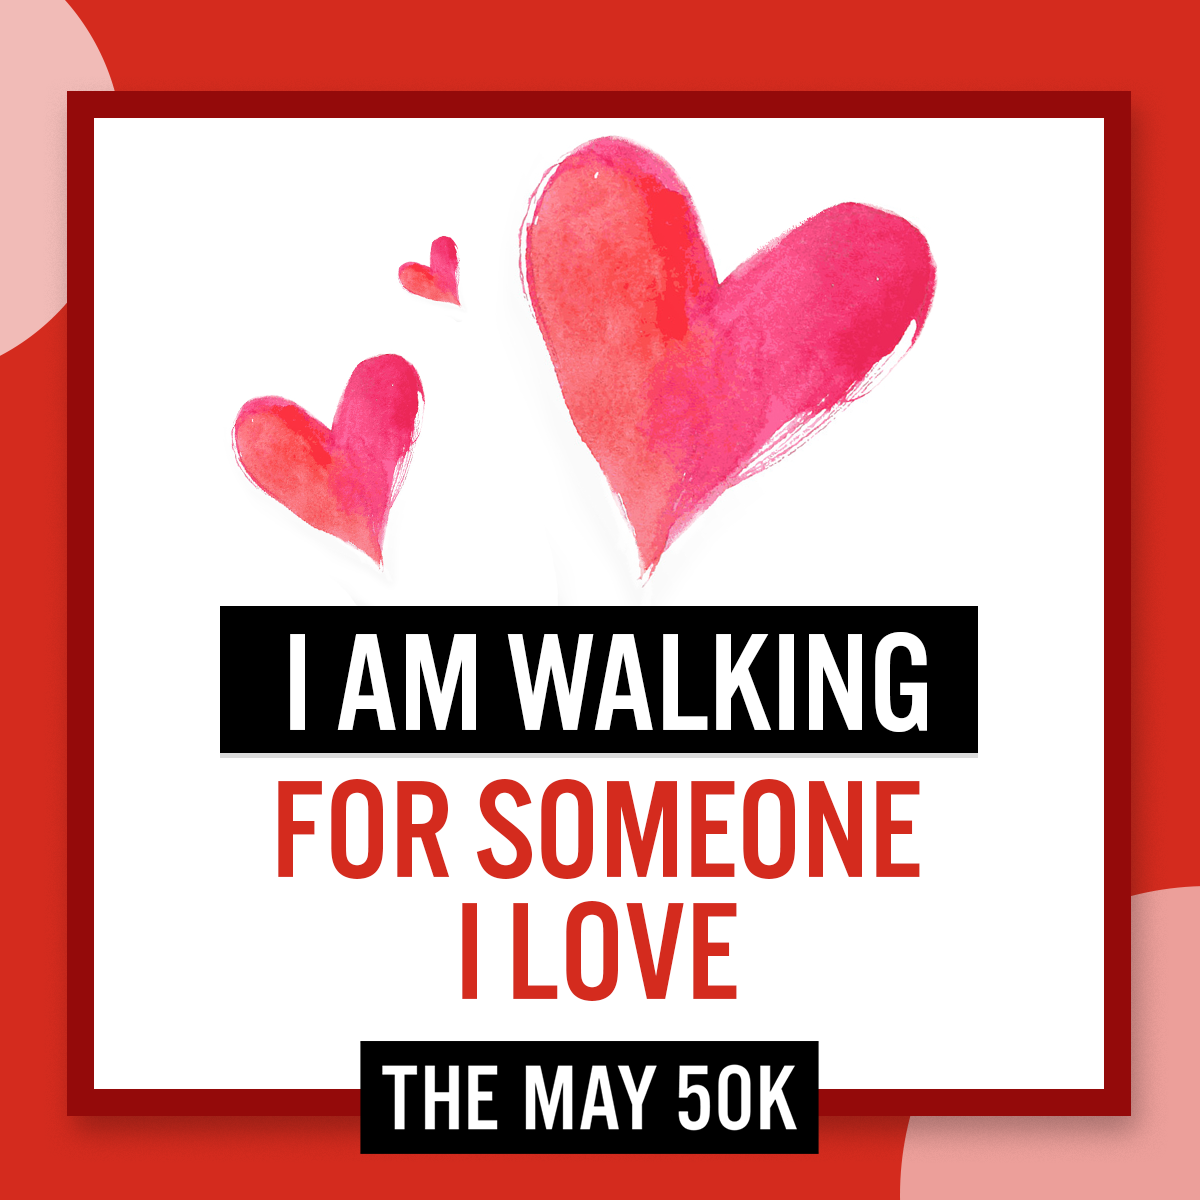 Social Posts - Walk For Someone Love